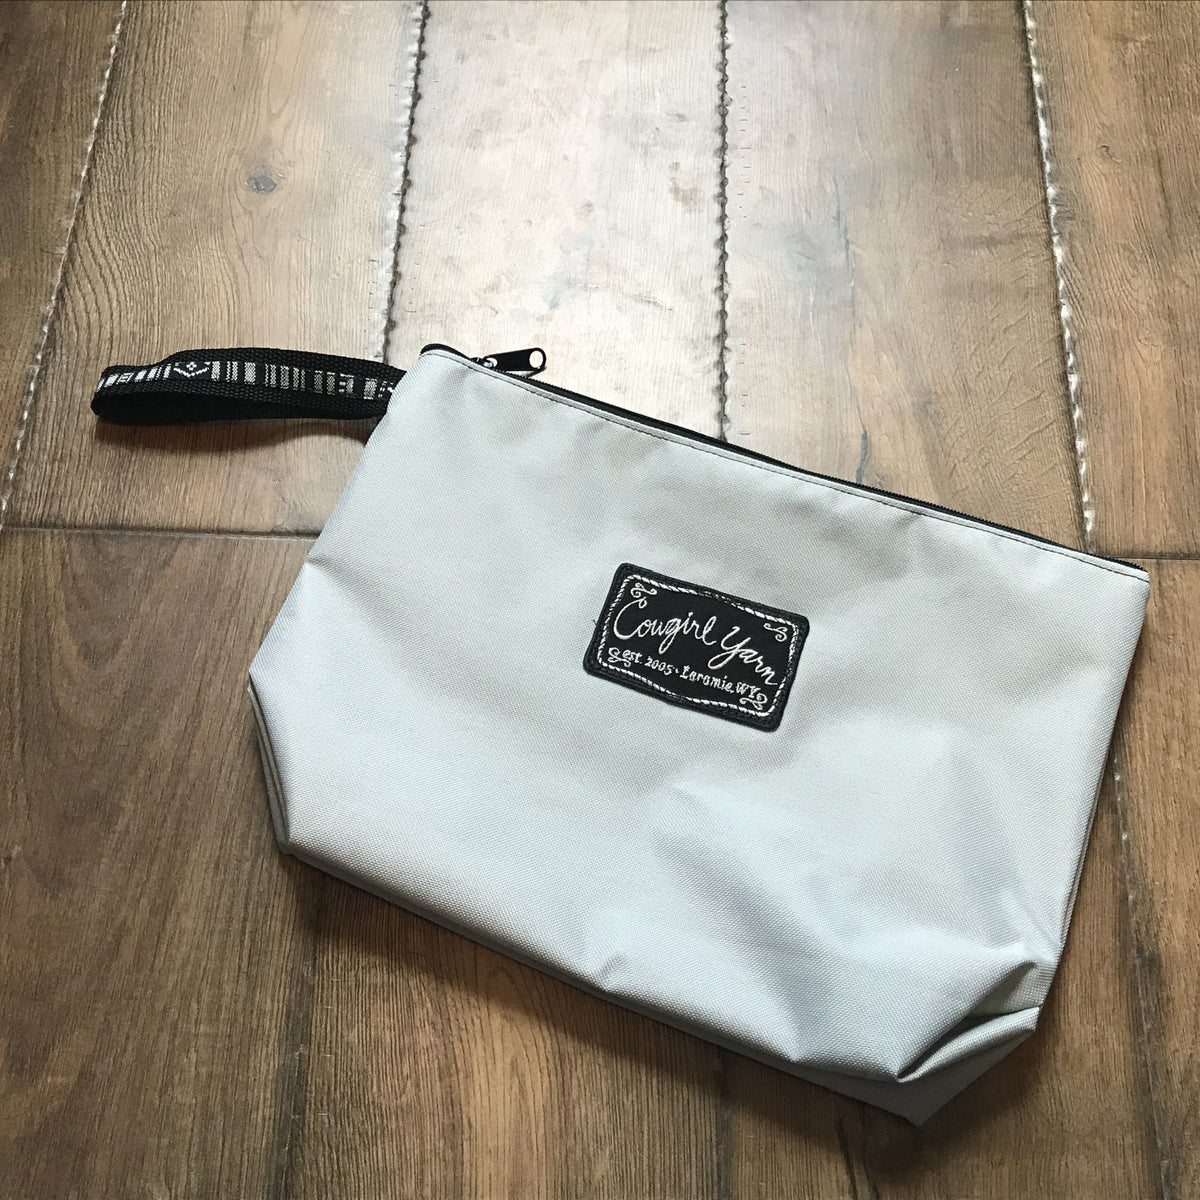 A white, zippered pouch featuring the Cowgirl Yarn logo